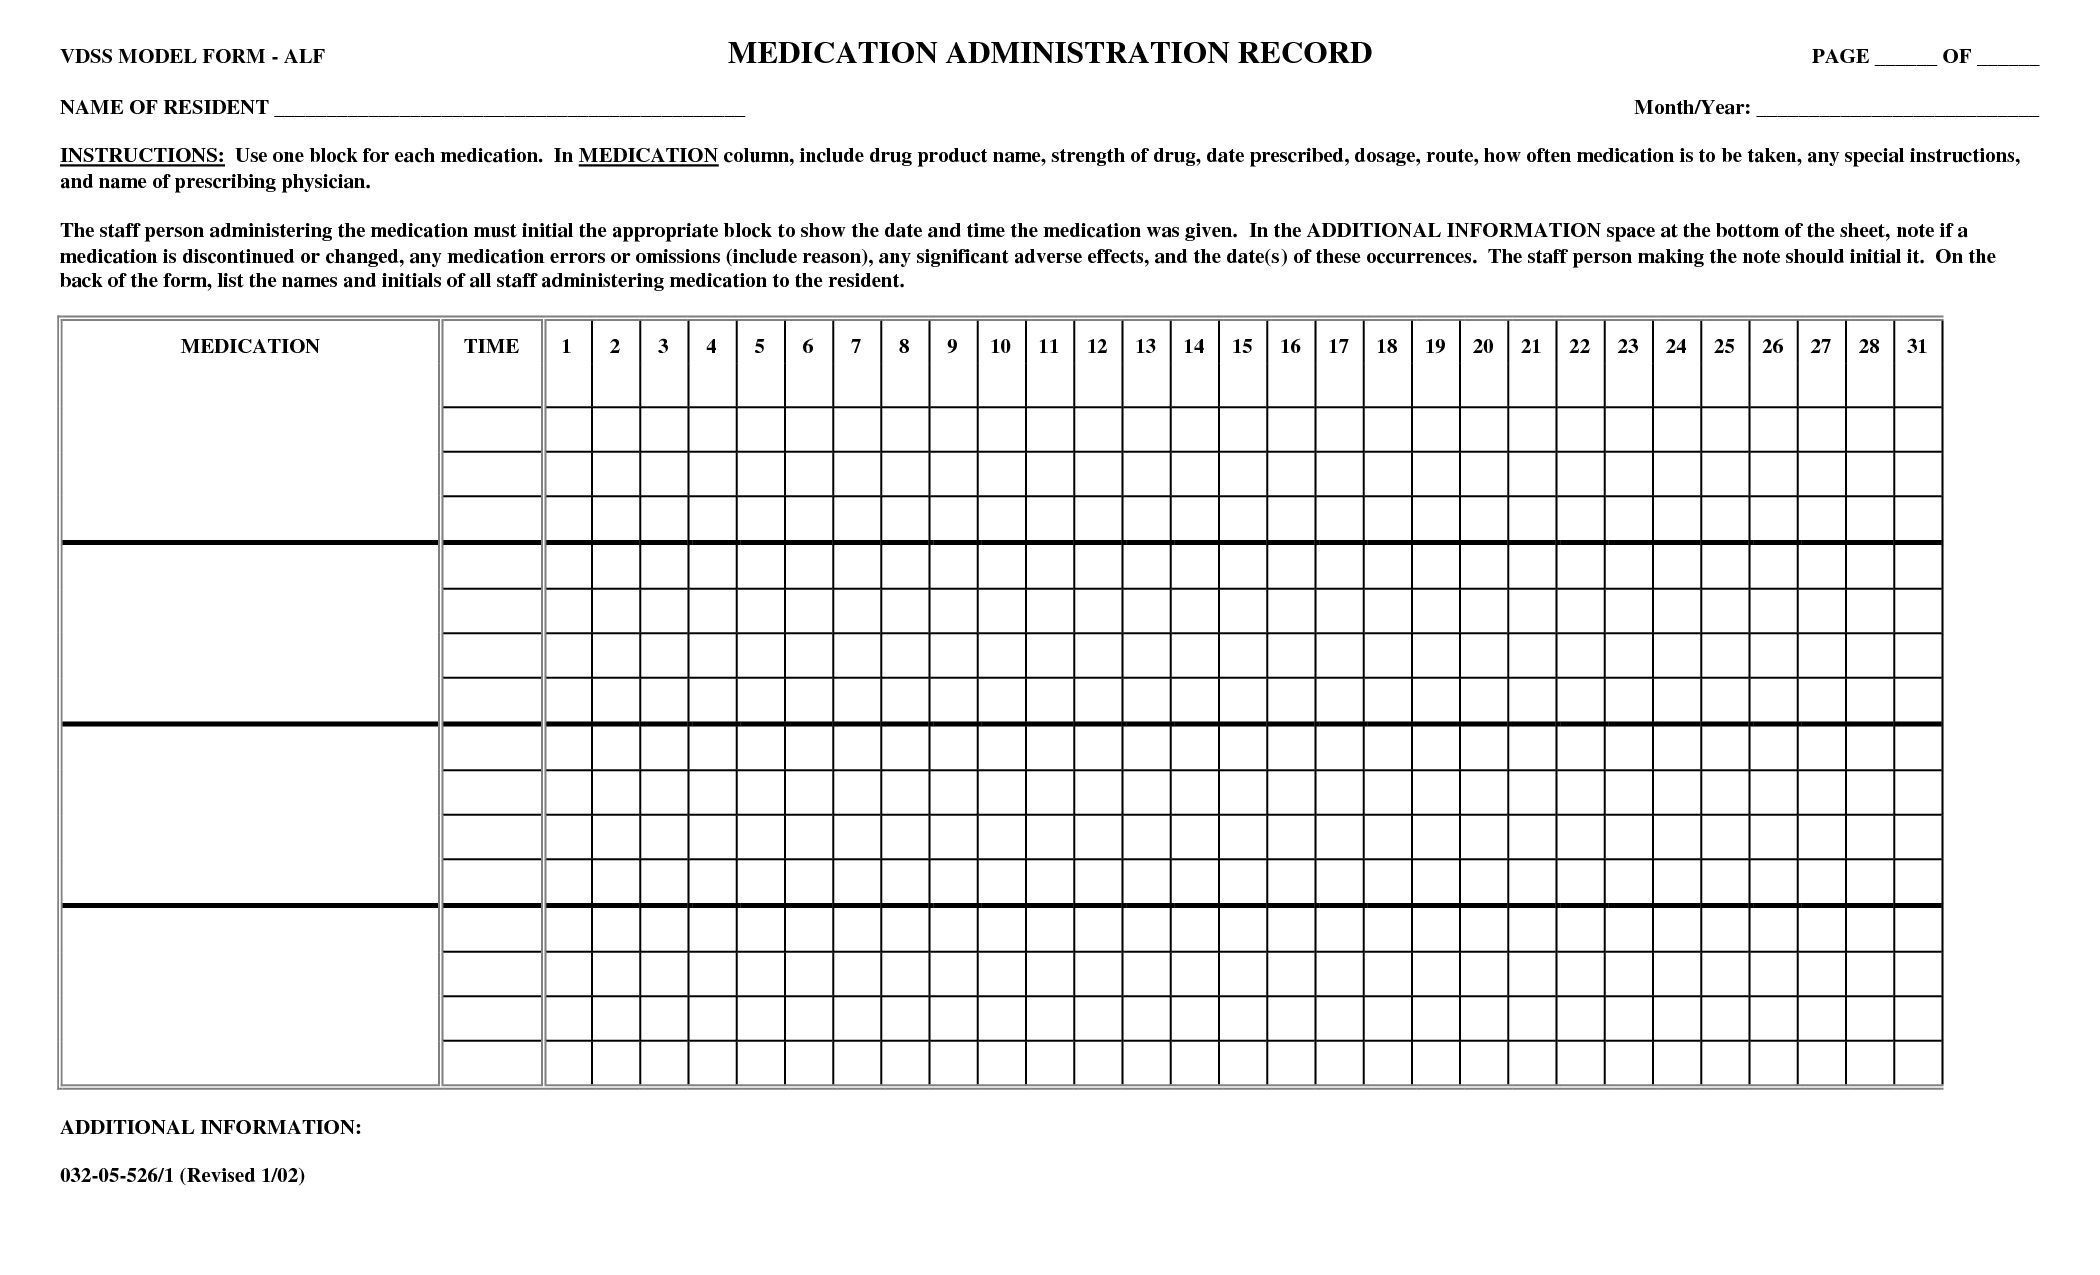 008 Outstanding Monthly Medication Administration Record Template Excel Photo Full